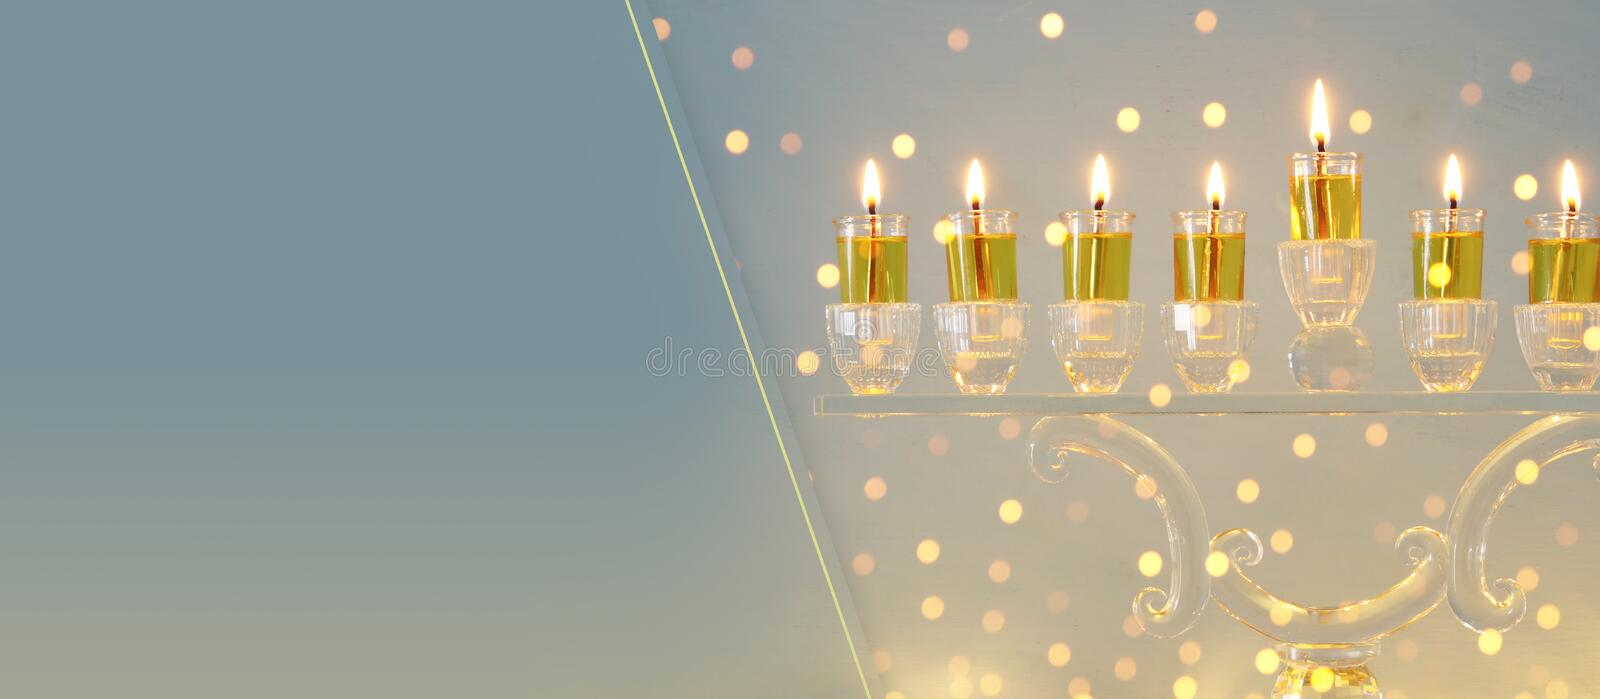 image of jewish holiday Hanukkah background with crystal menorah & x28;traditional candelabra& x29; and candles. royalty free stock image